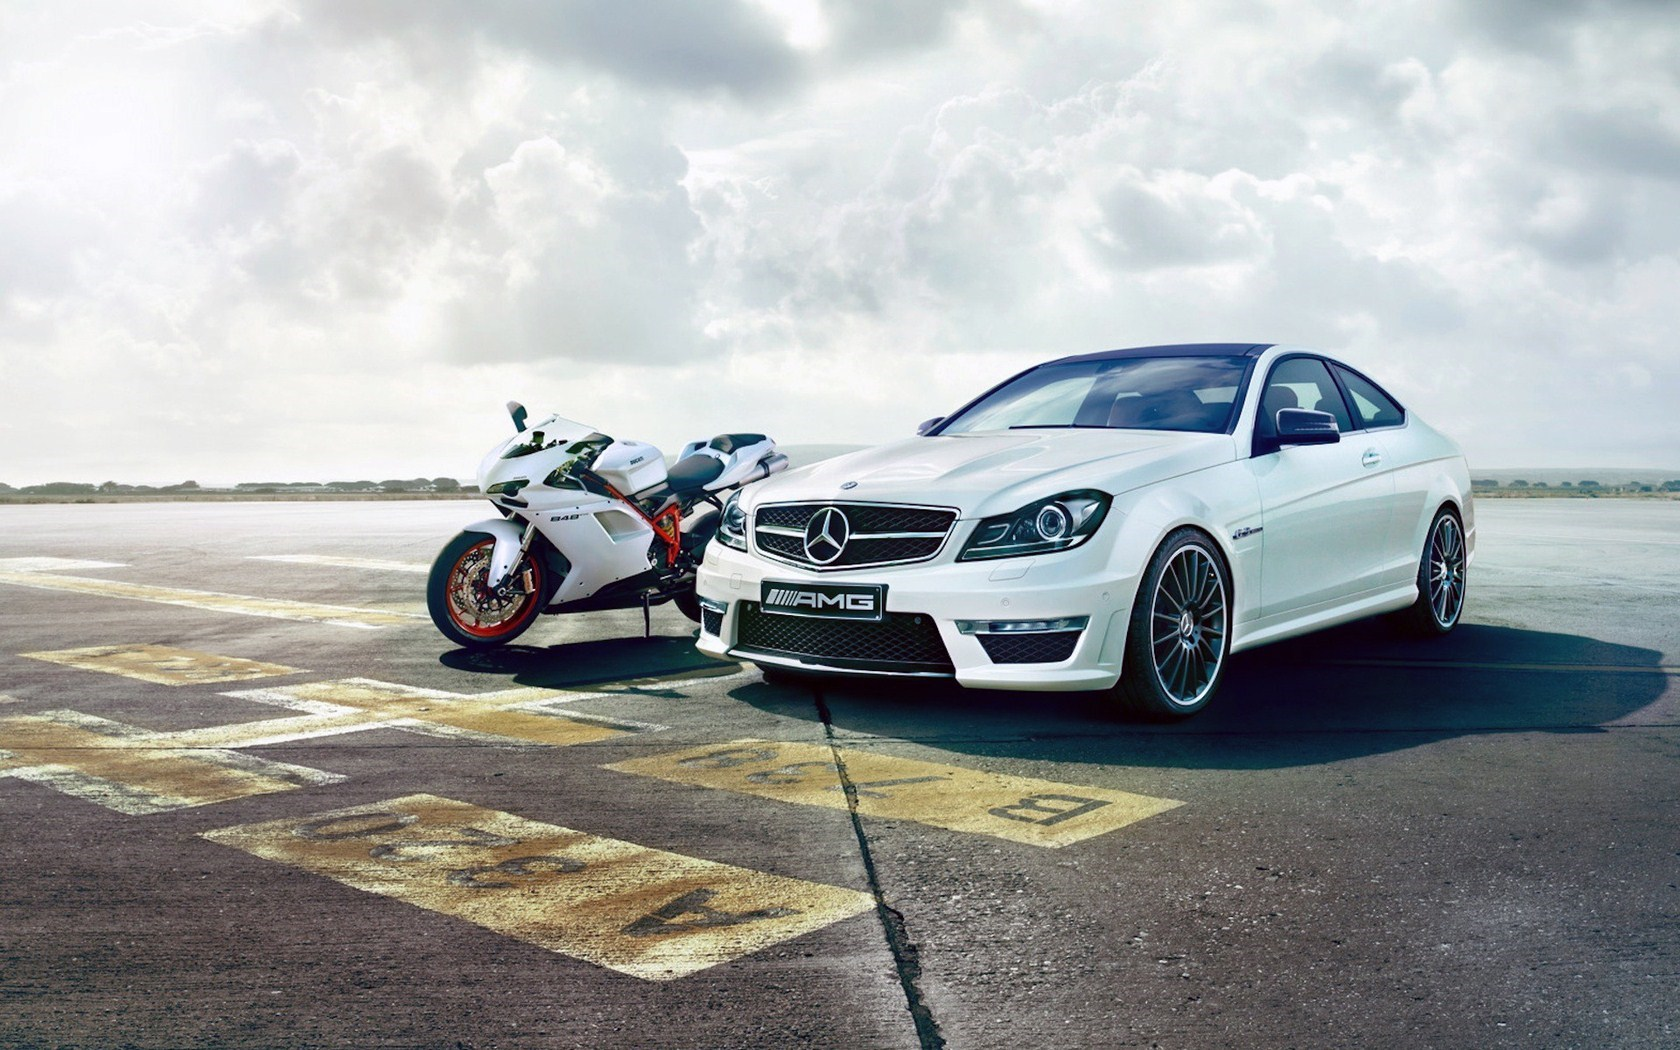 Mercedes-Benz C63 AMG Motorcycle Ducati 848